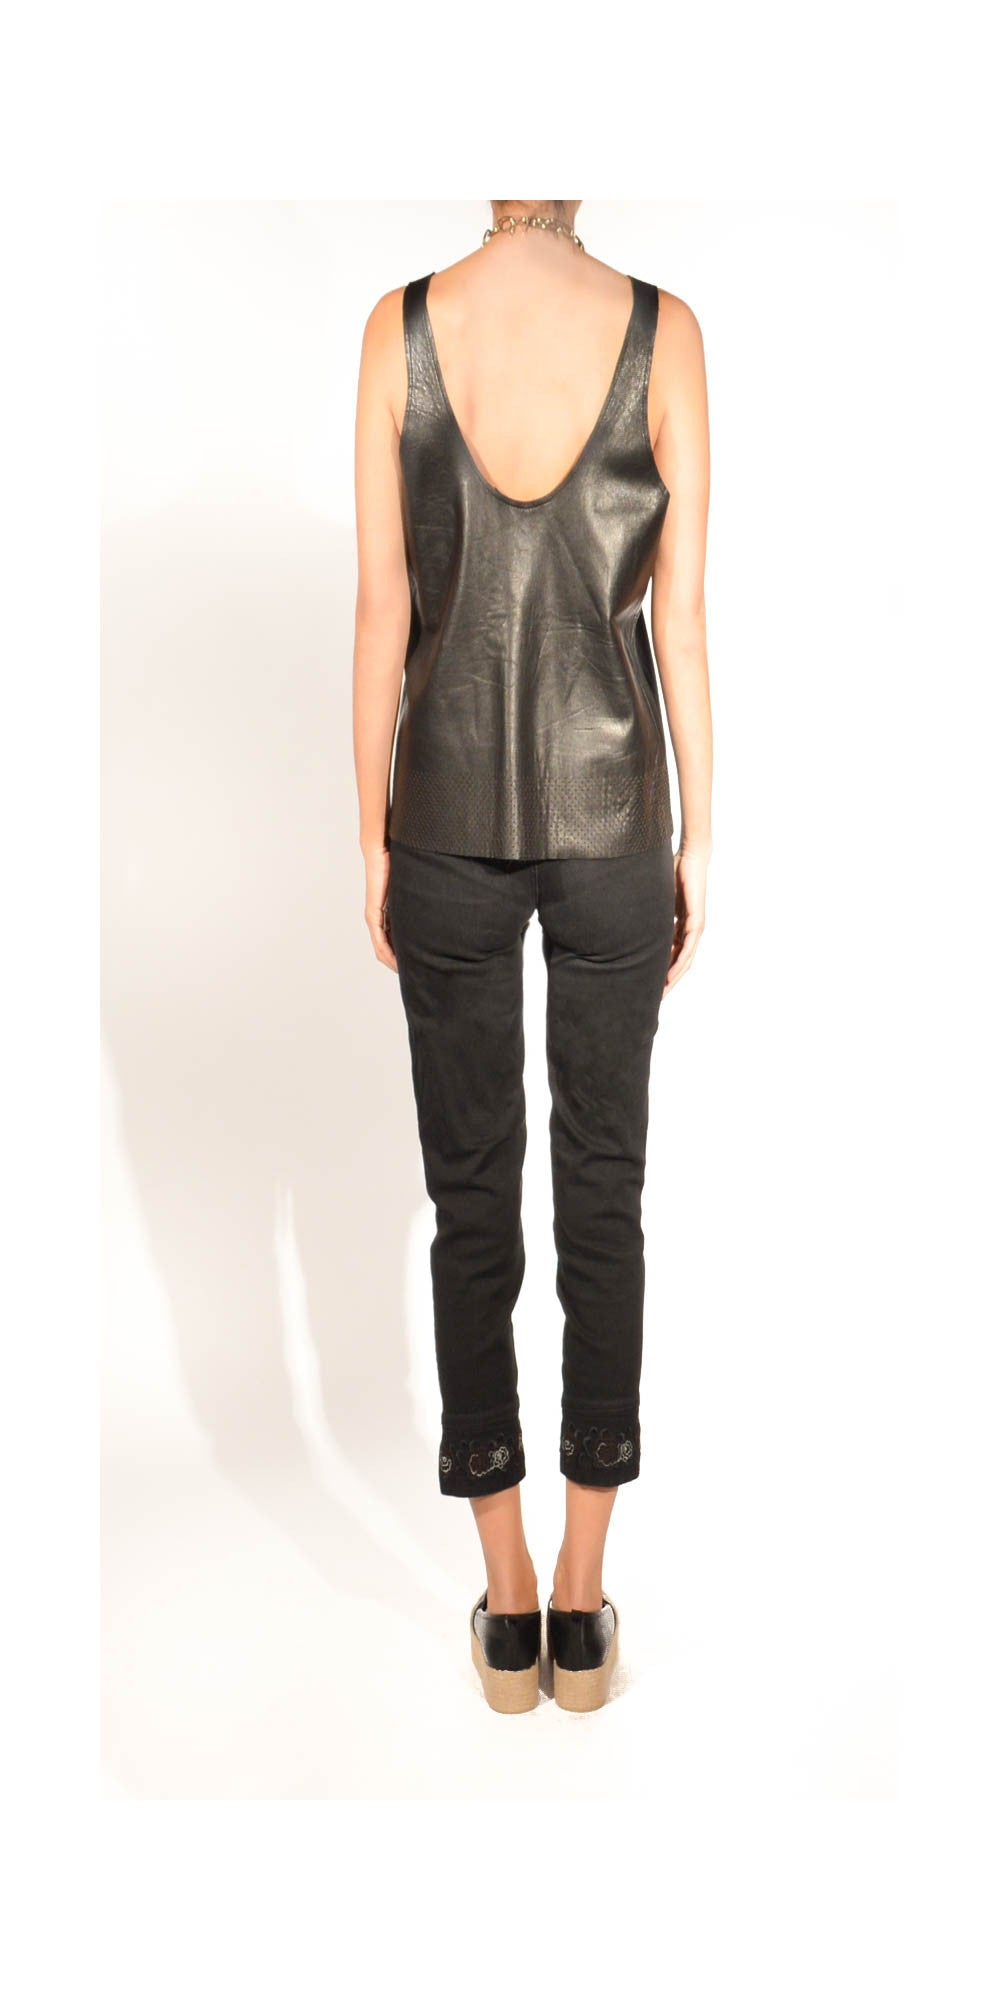 boxy leather tank top